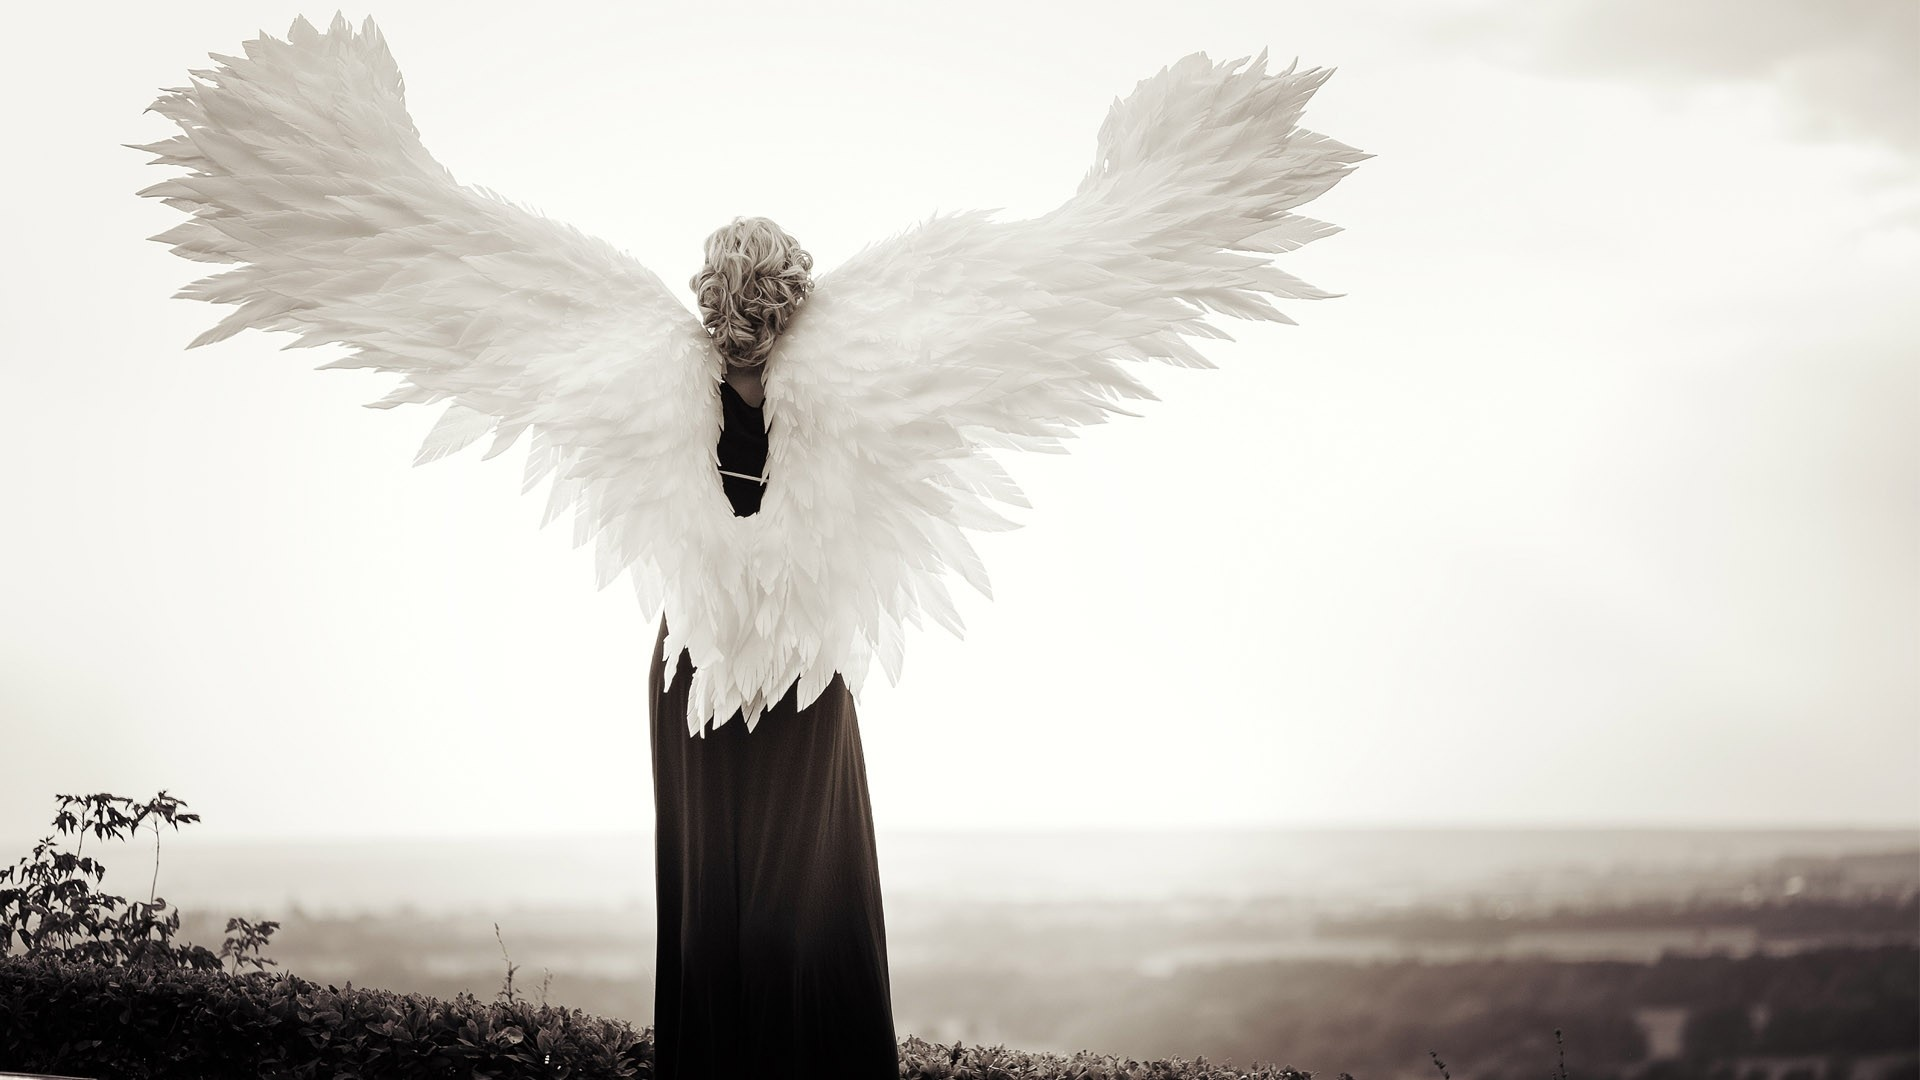 A person who looks like an angel with angel wings representing a Lightworker or Guardian.